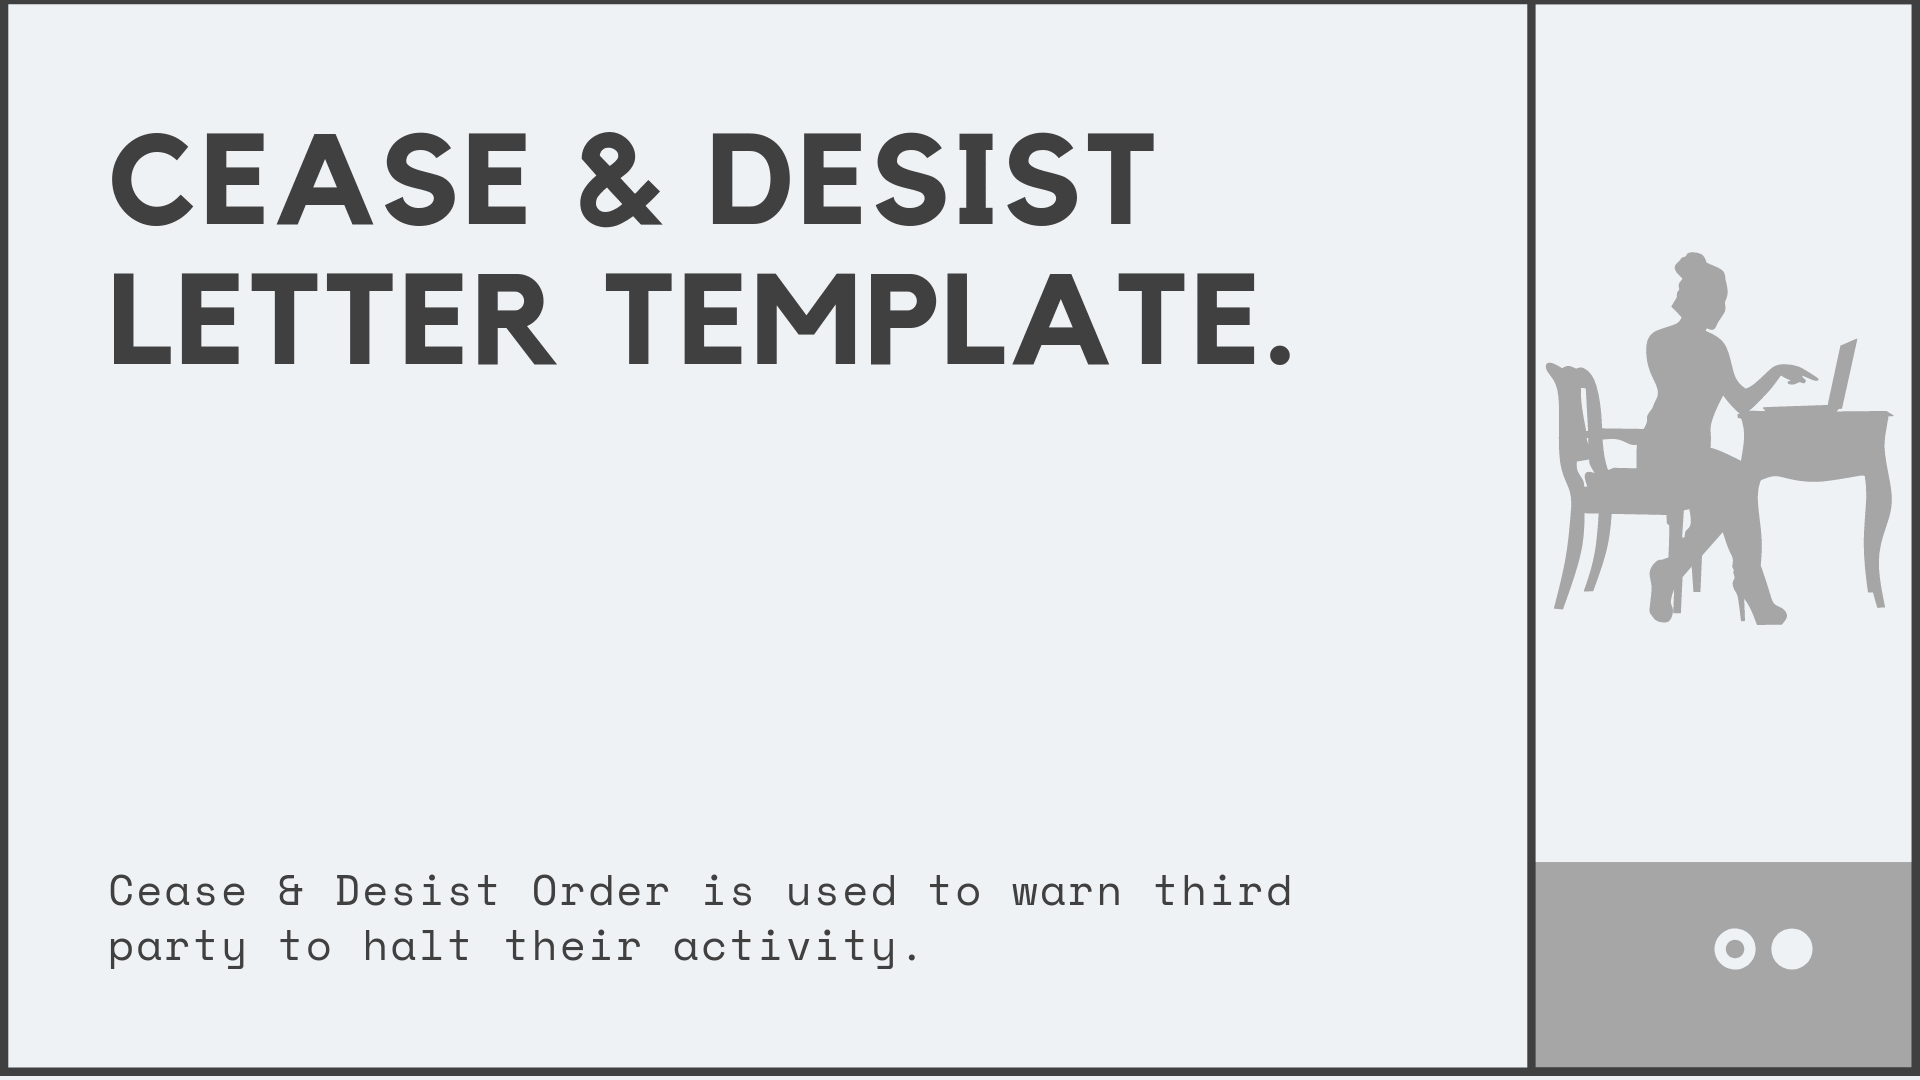 Response To Cease And Desist Letter Template from afidavit.com